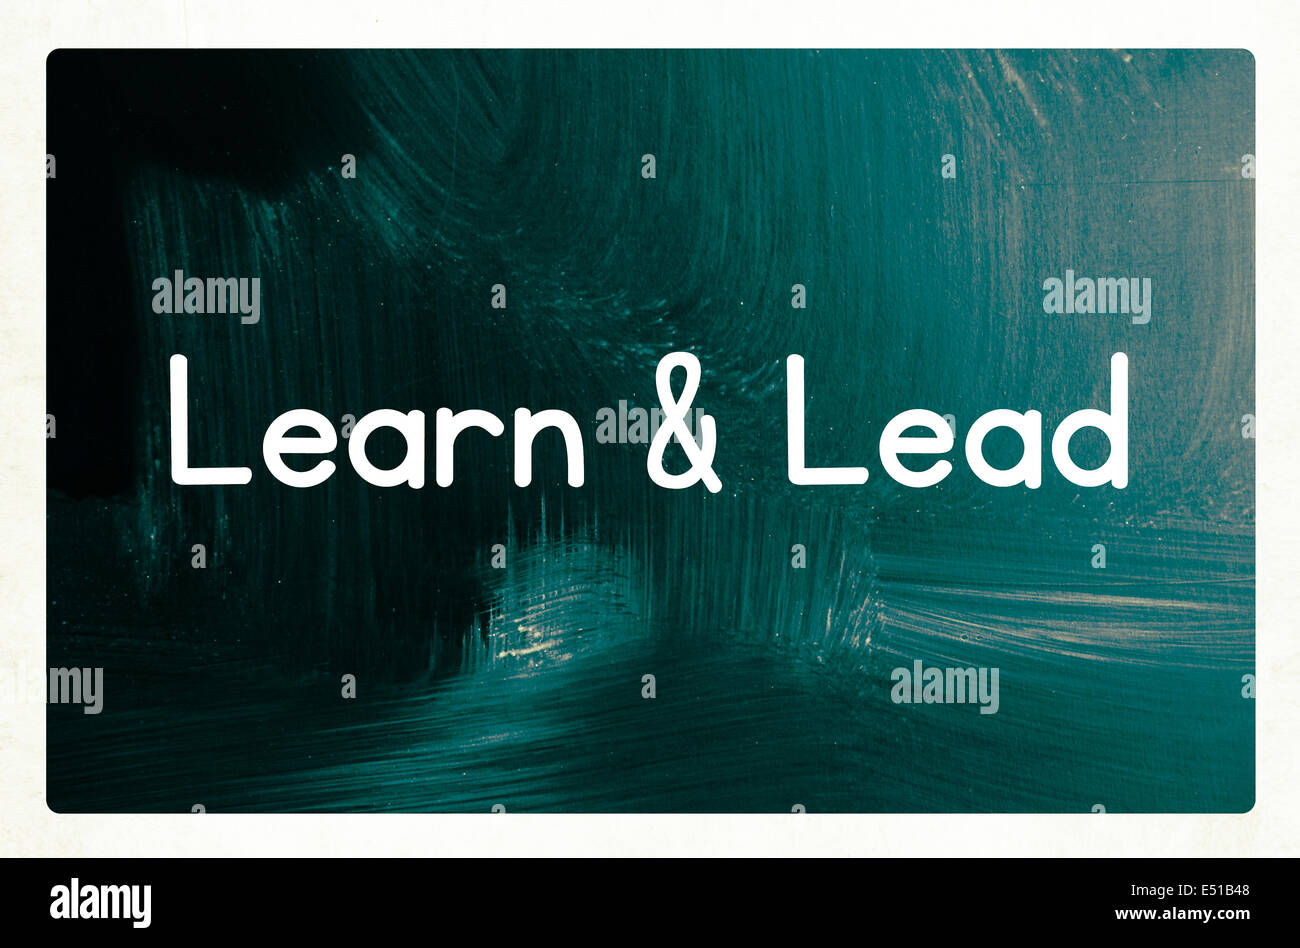 learn and lead concept - Stock Image